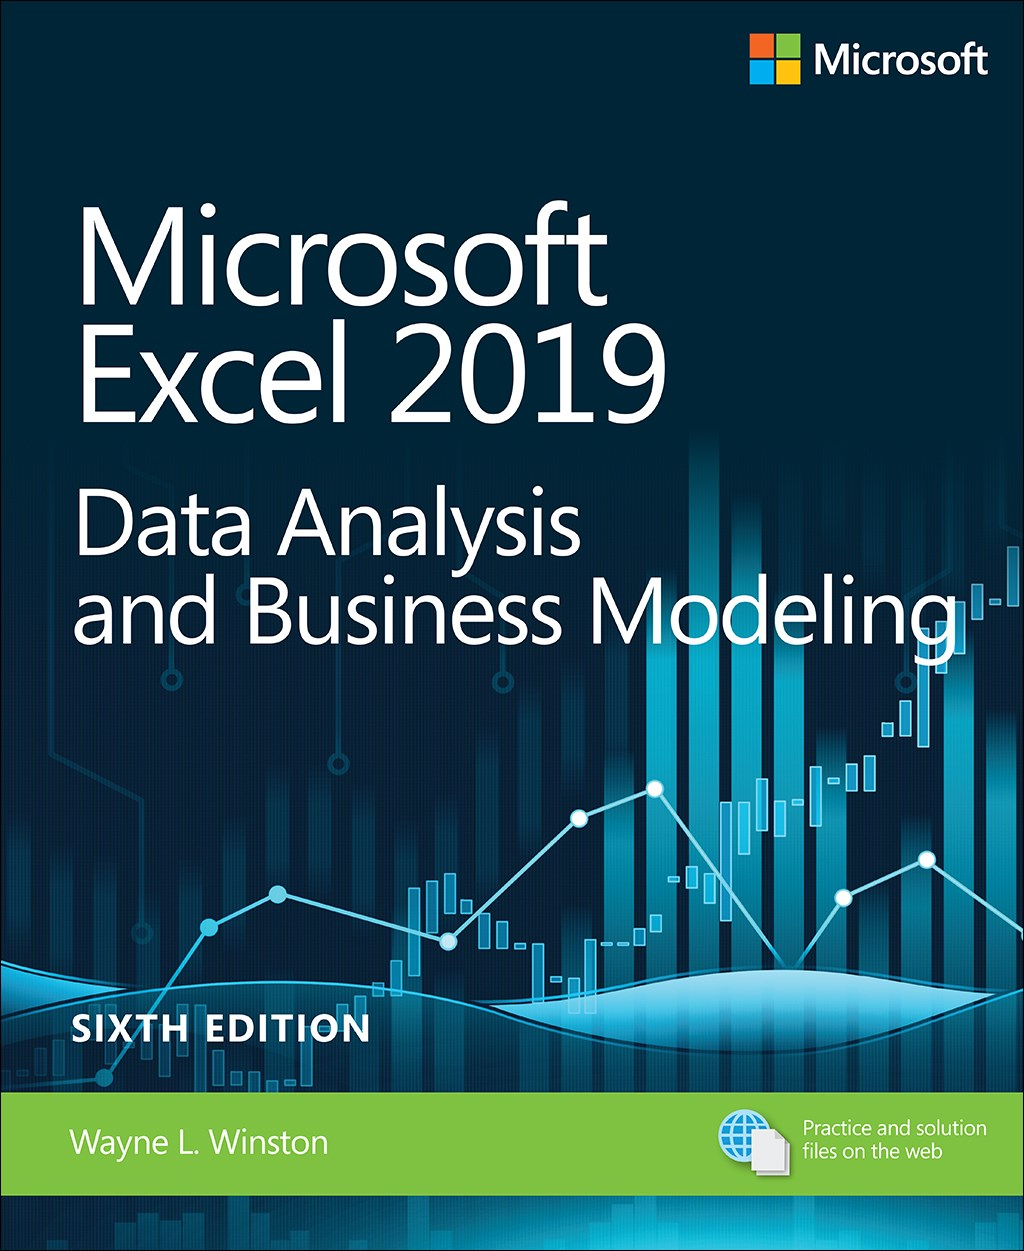 Microsoft Excel 2019 Data Analysis and Business Modeling, 6th Edition